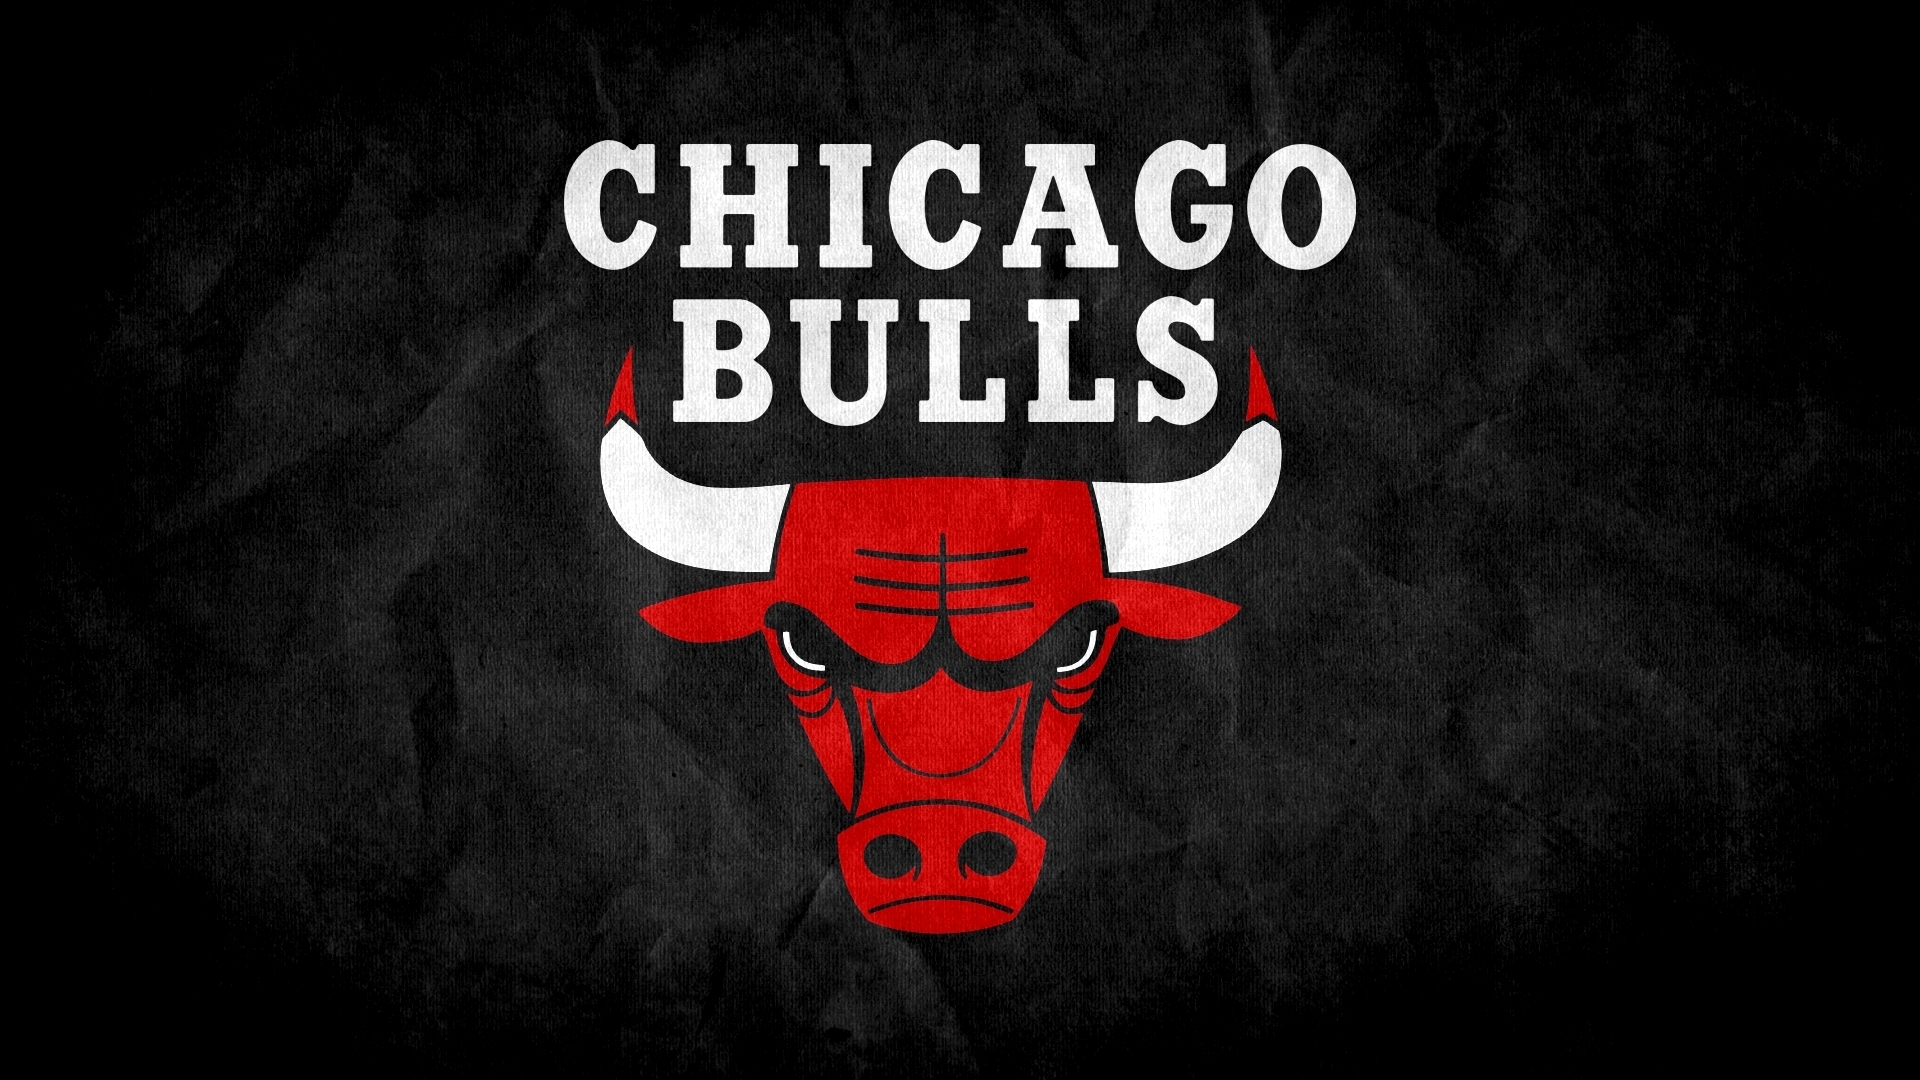 chicago bulls full hd wallpaper and background image | 1920x1080